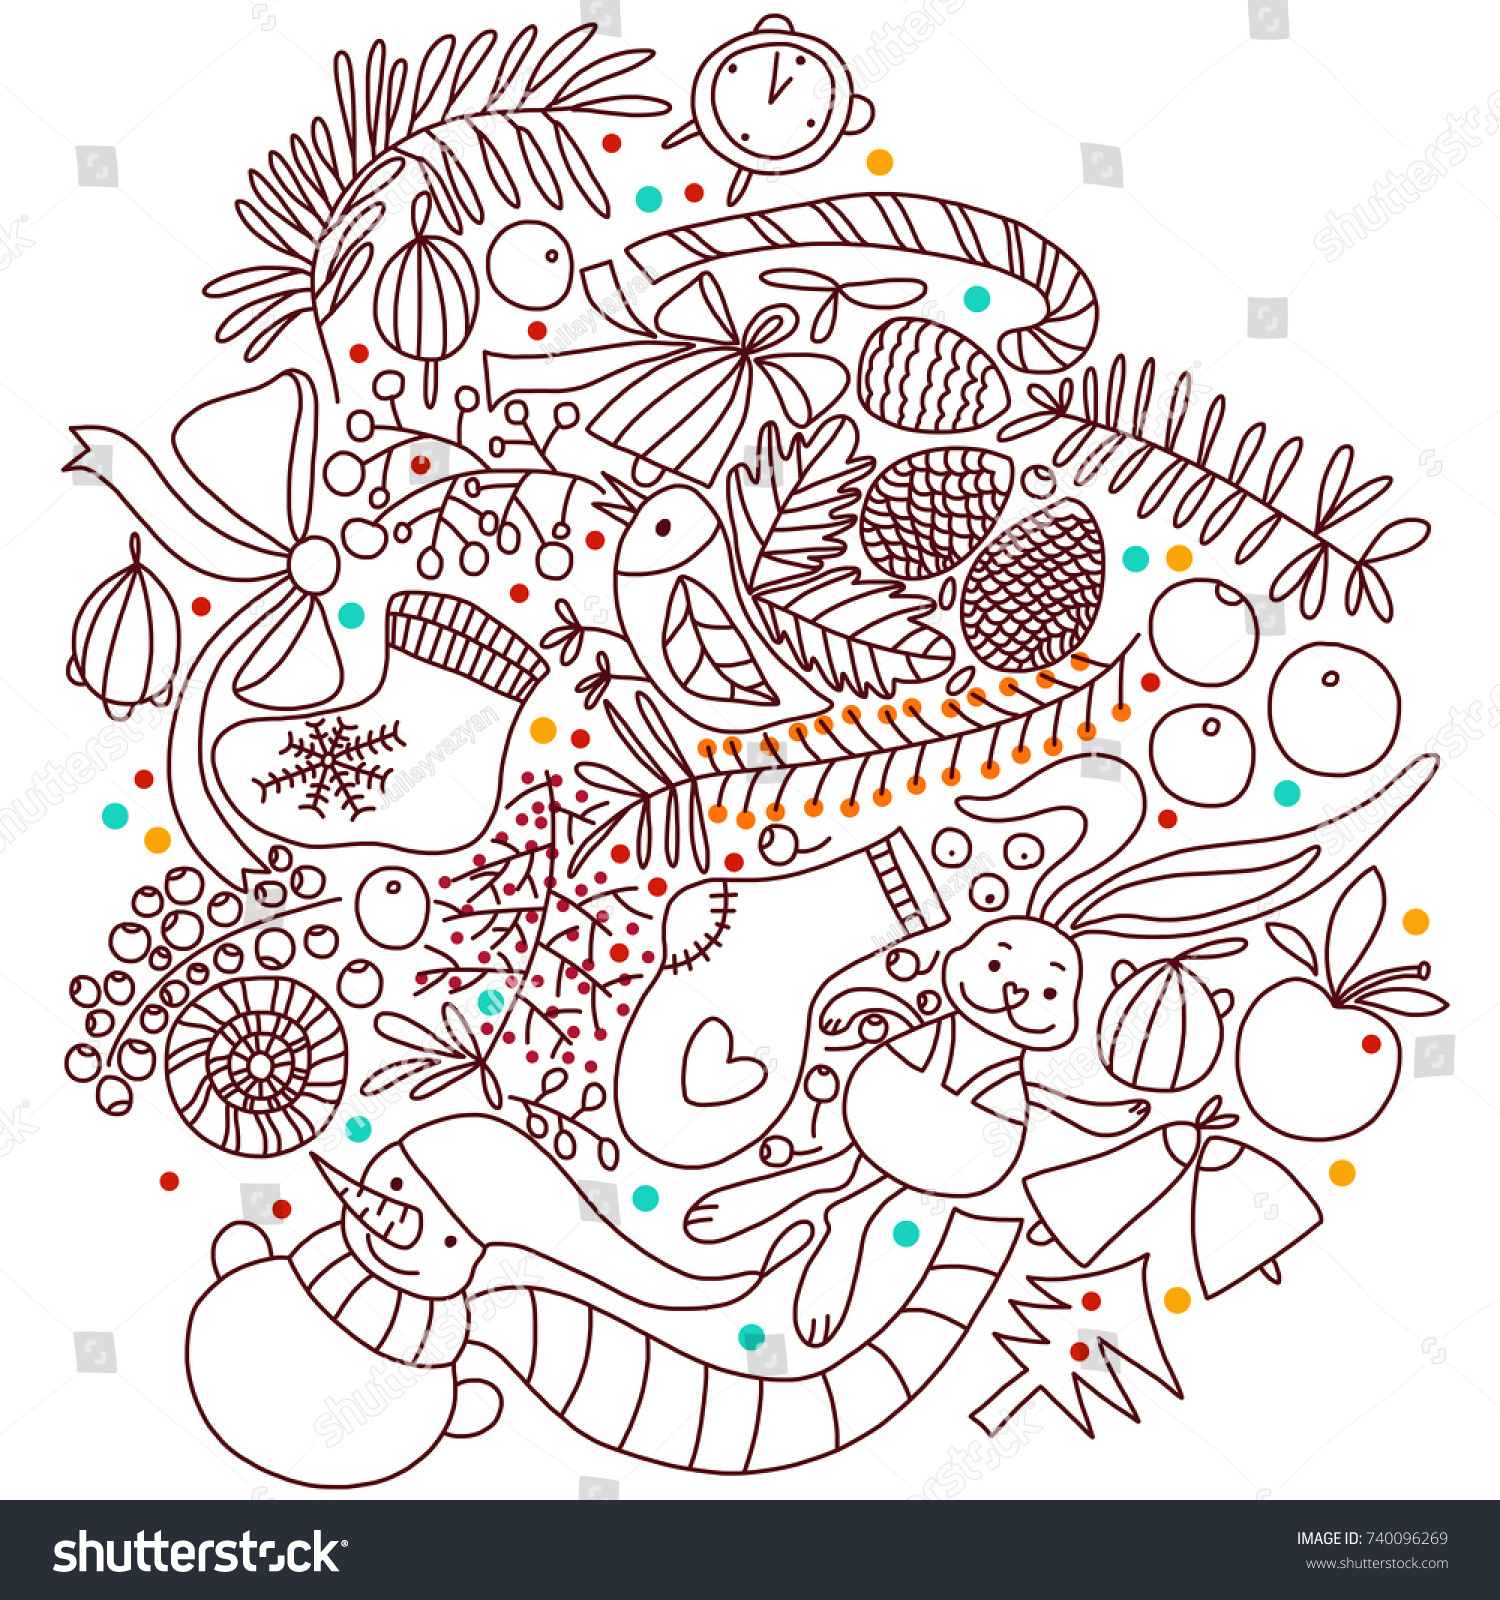 Christmas Coloring Book Color Snowflakes Stock Illustration 740096269